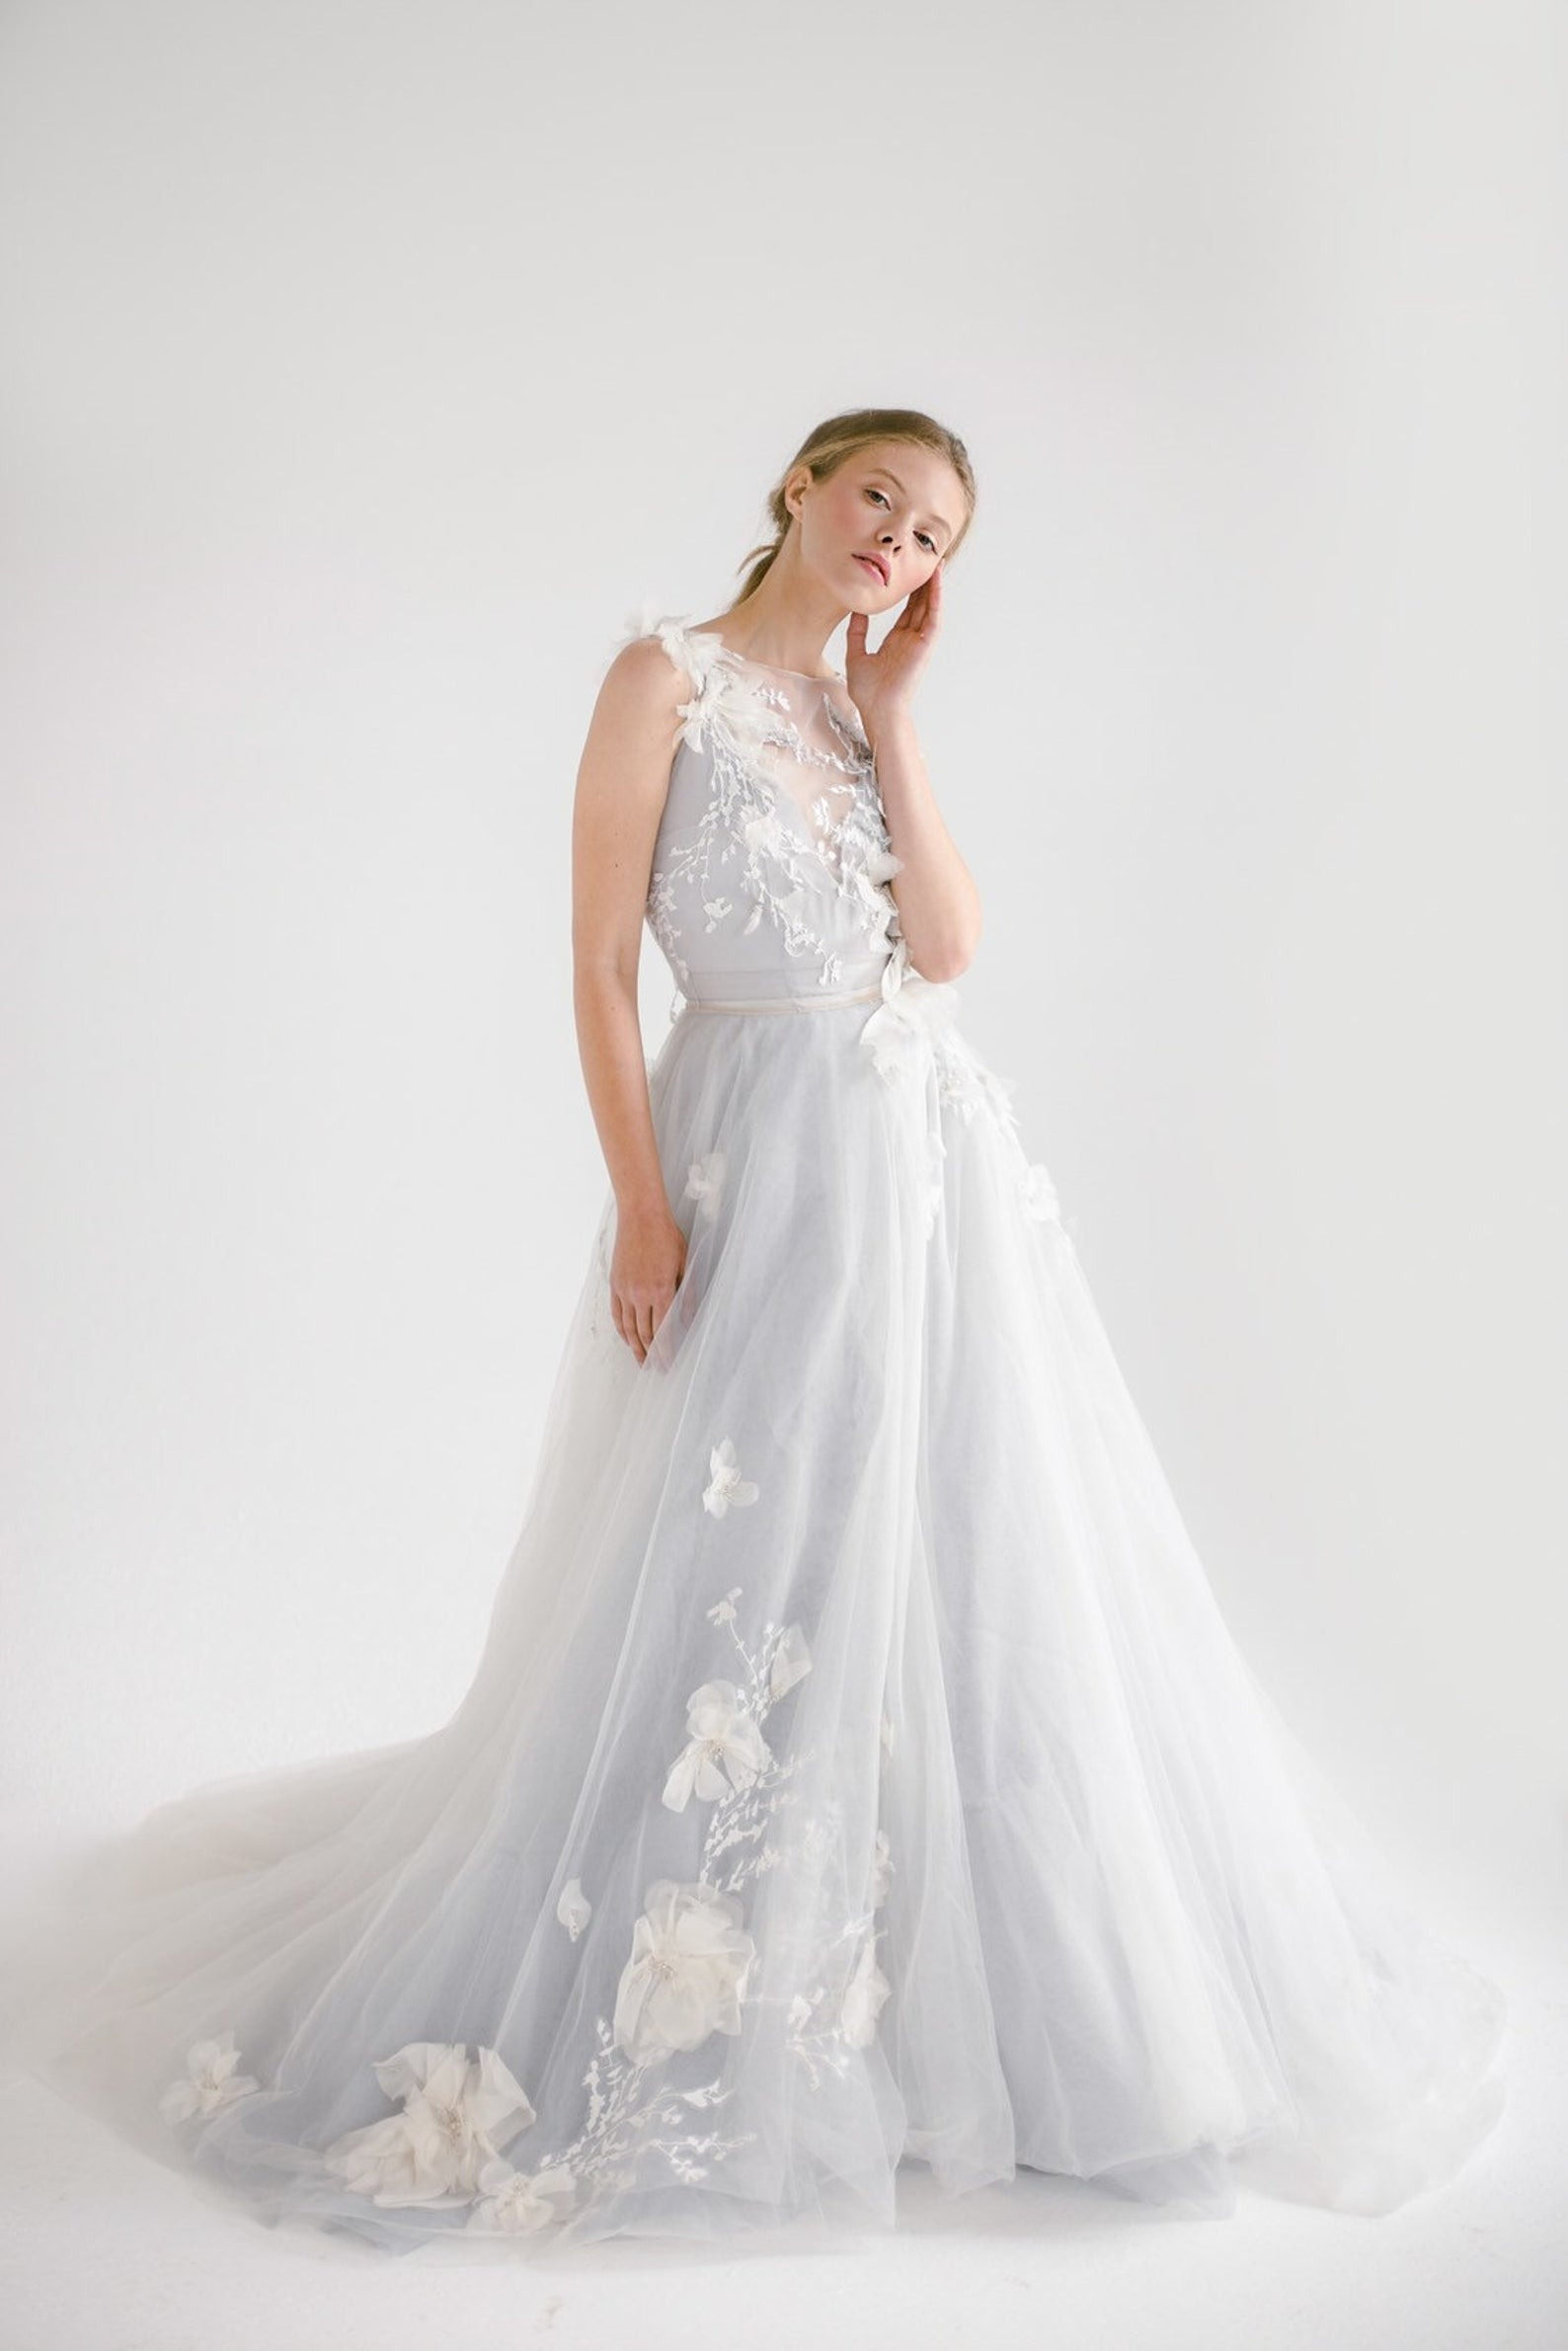 tulle floral online wedding dresses from Mywony Bridal on Etsy